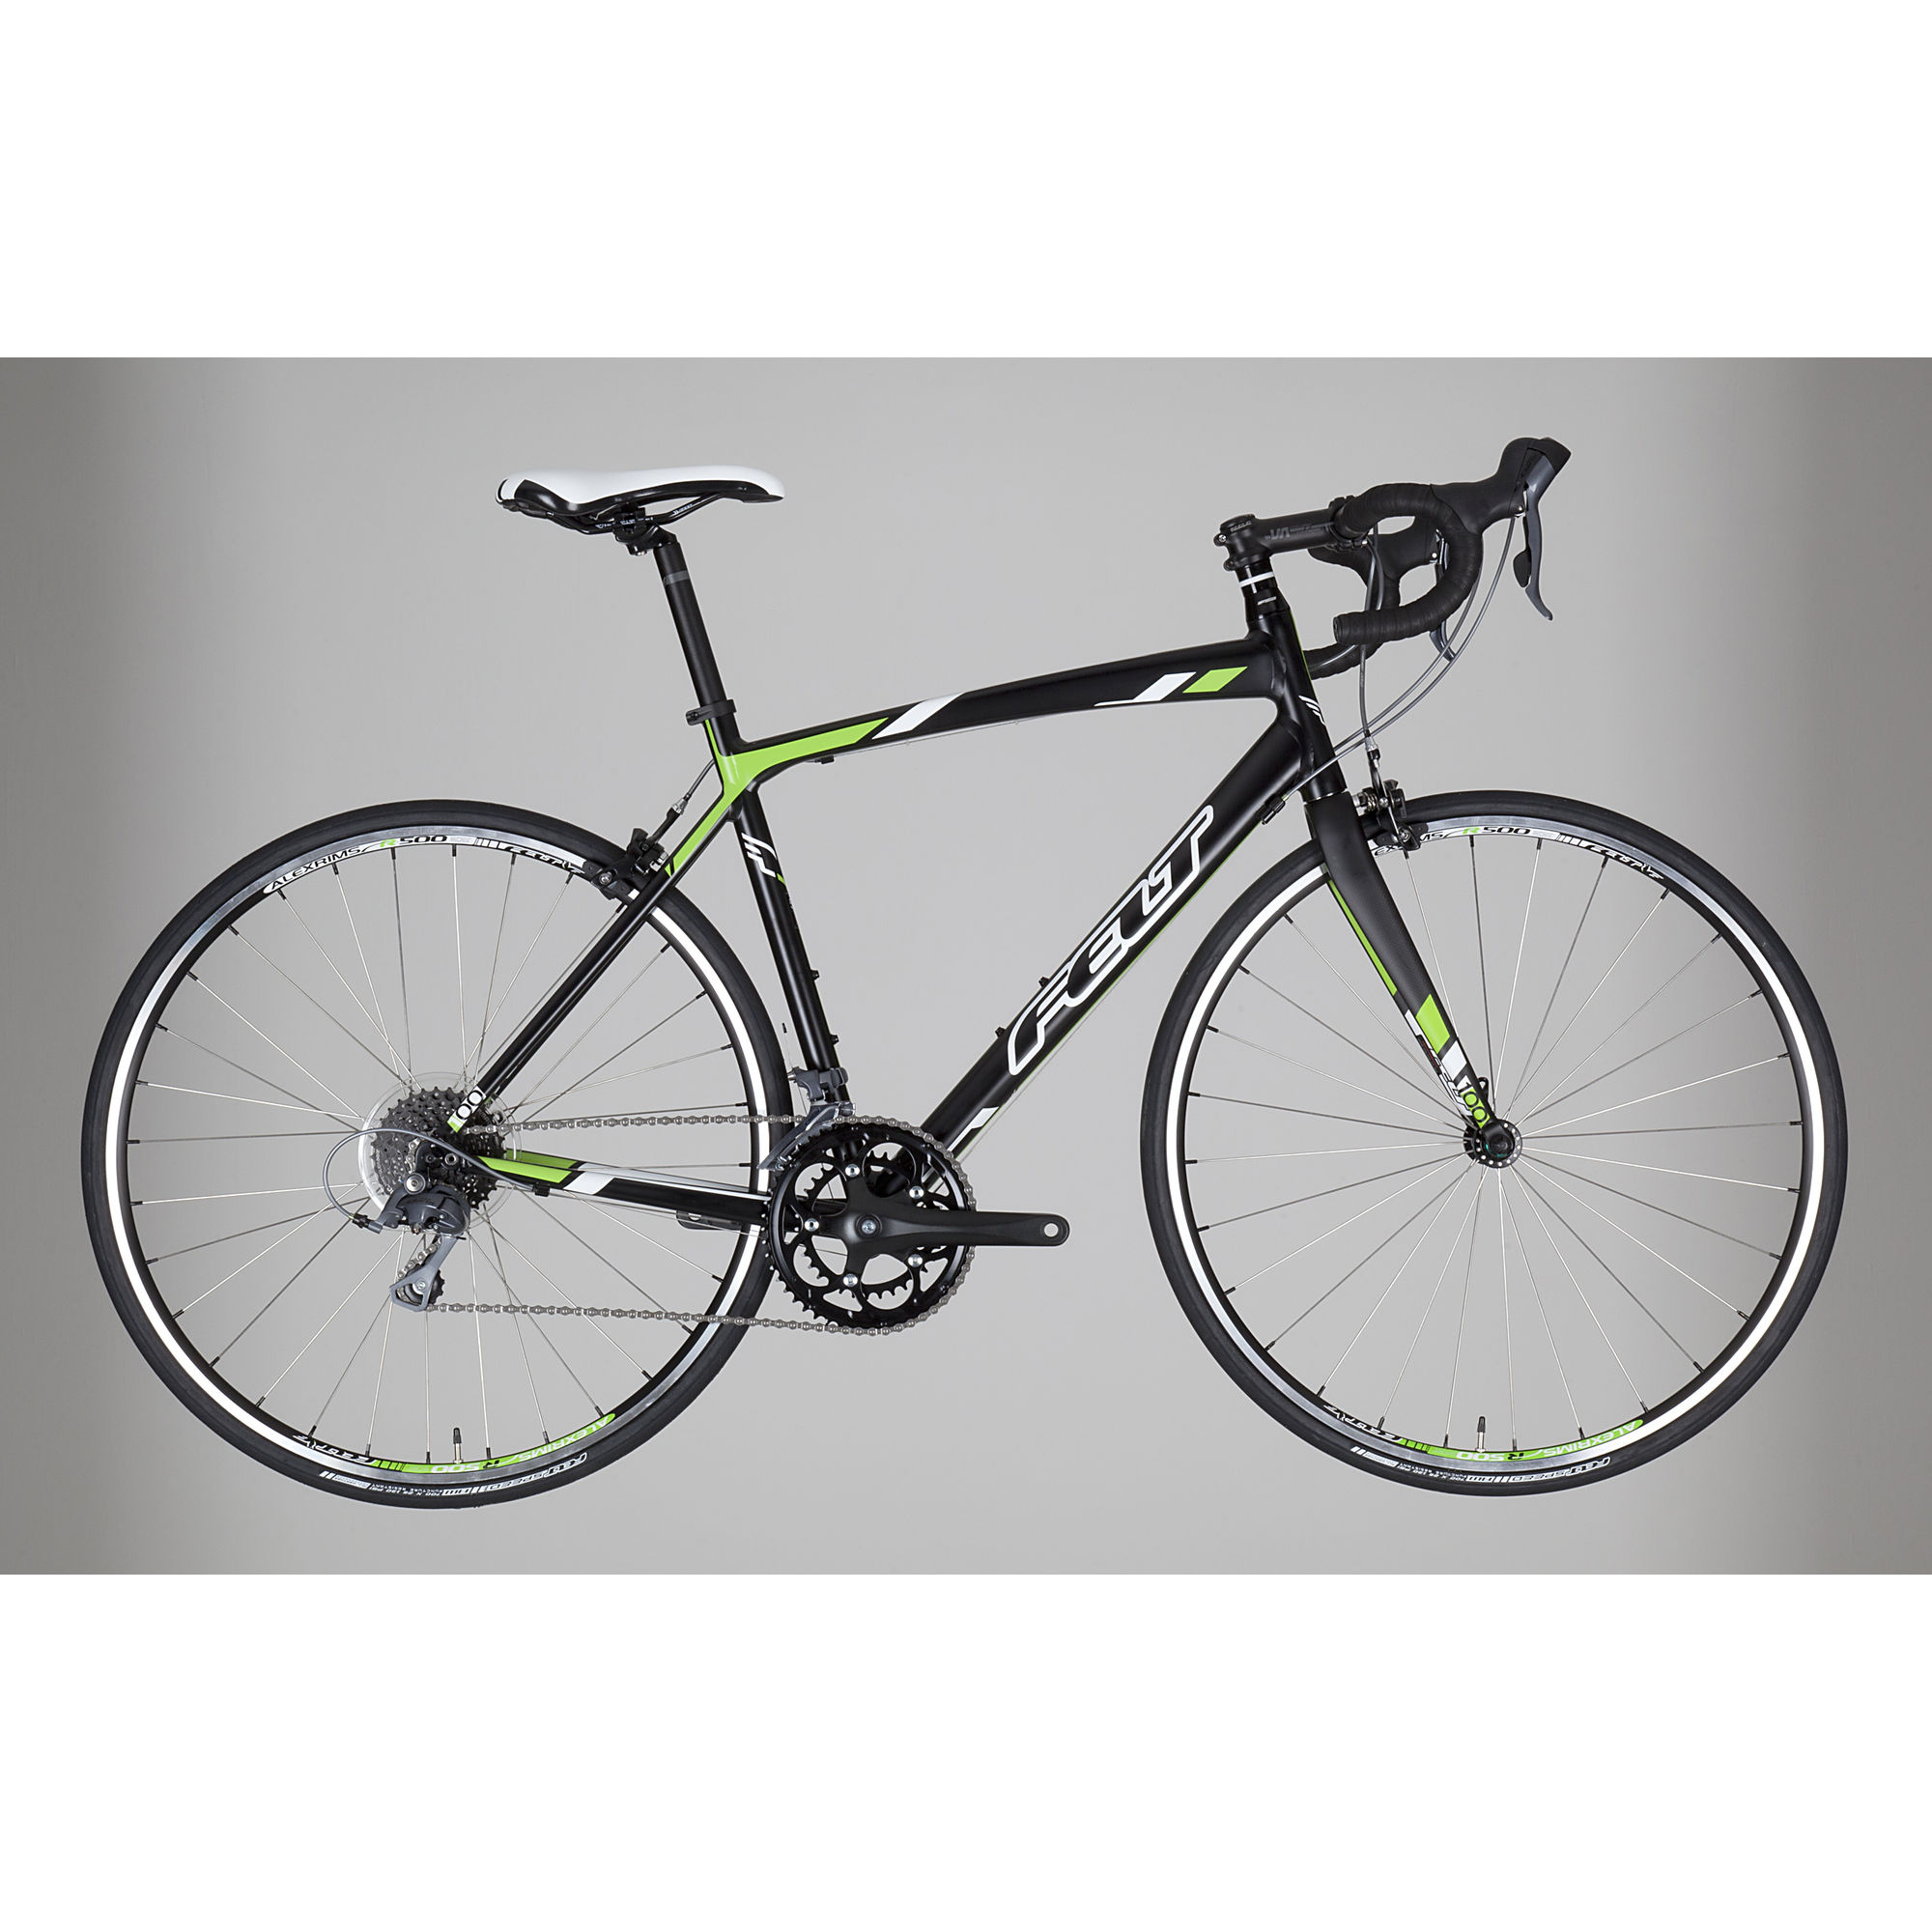 Felt Z100 on sale at Wiggle